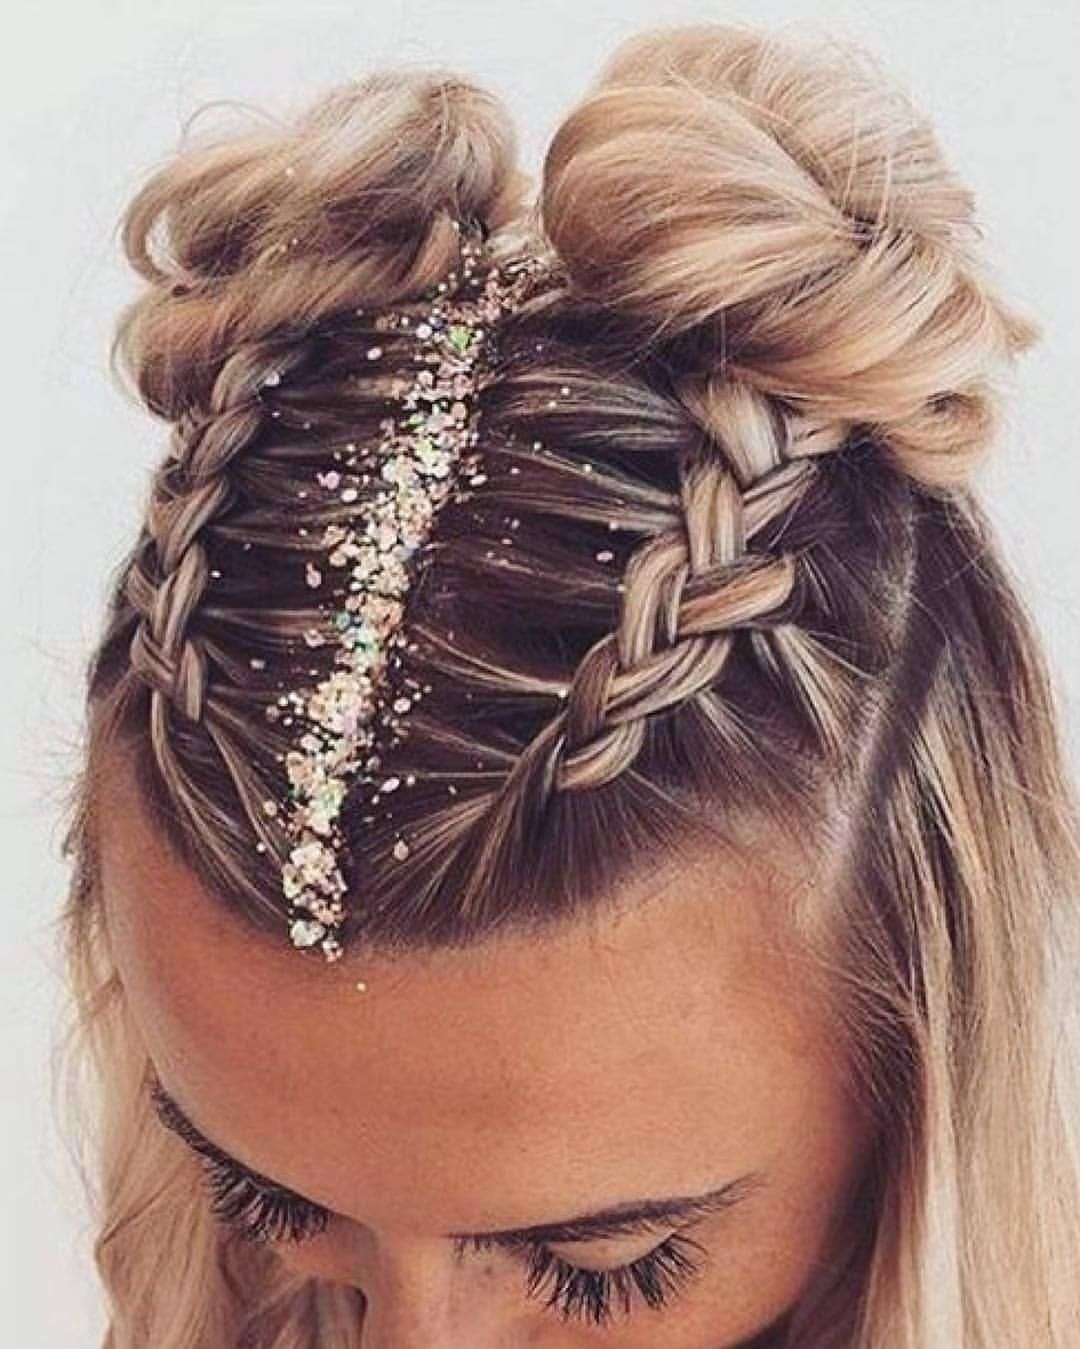 1 2 3 4 5 6 7 8 9 Or 10 Comment Your Favorite Hair Styles Romantic Braided Hair Long Hair Styles